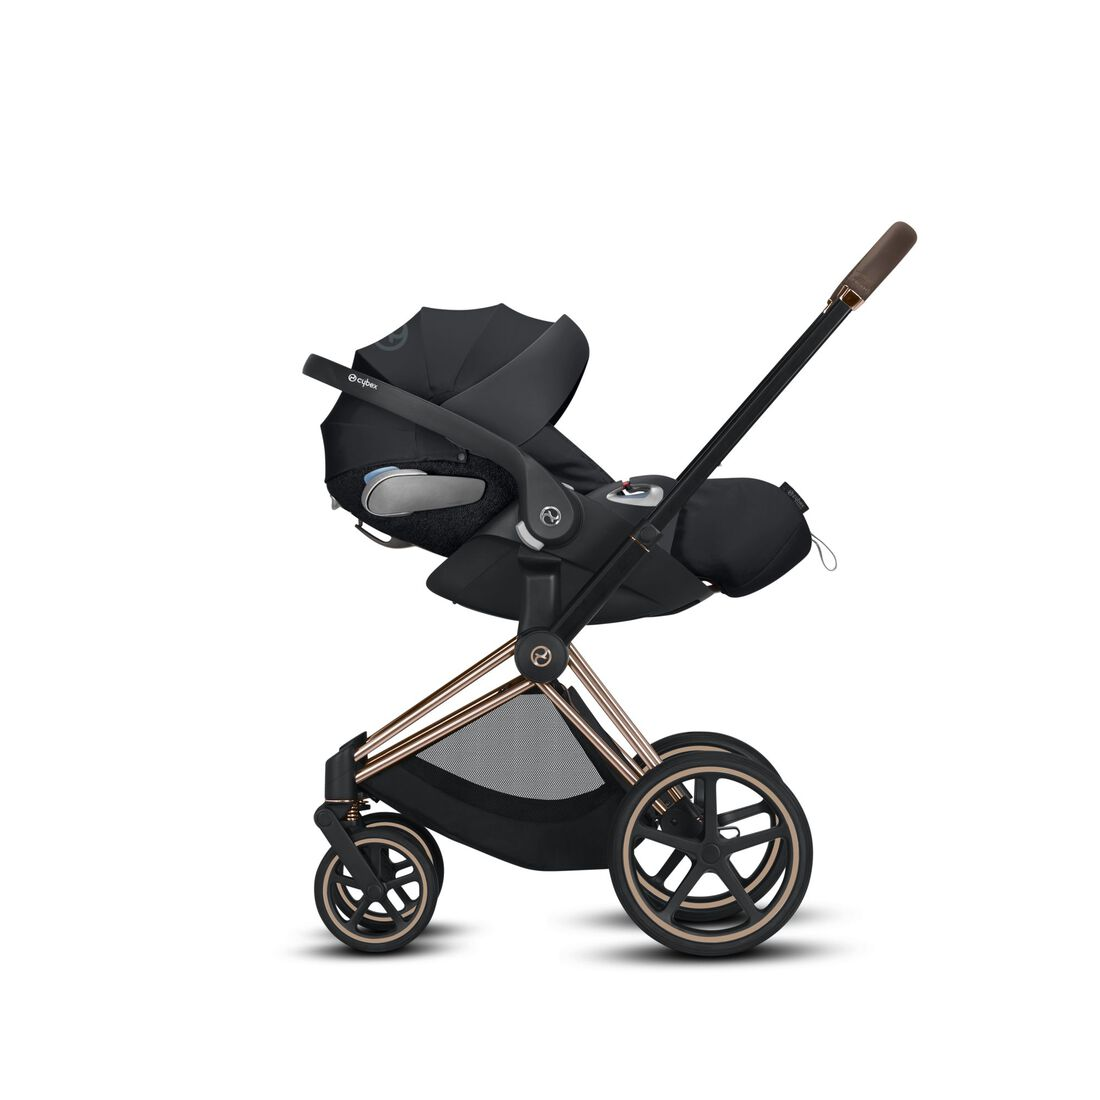 CYBEX Balios S - Front swivel wheels